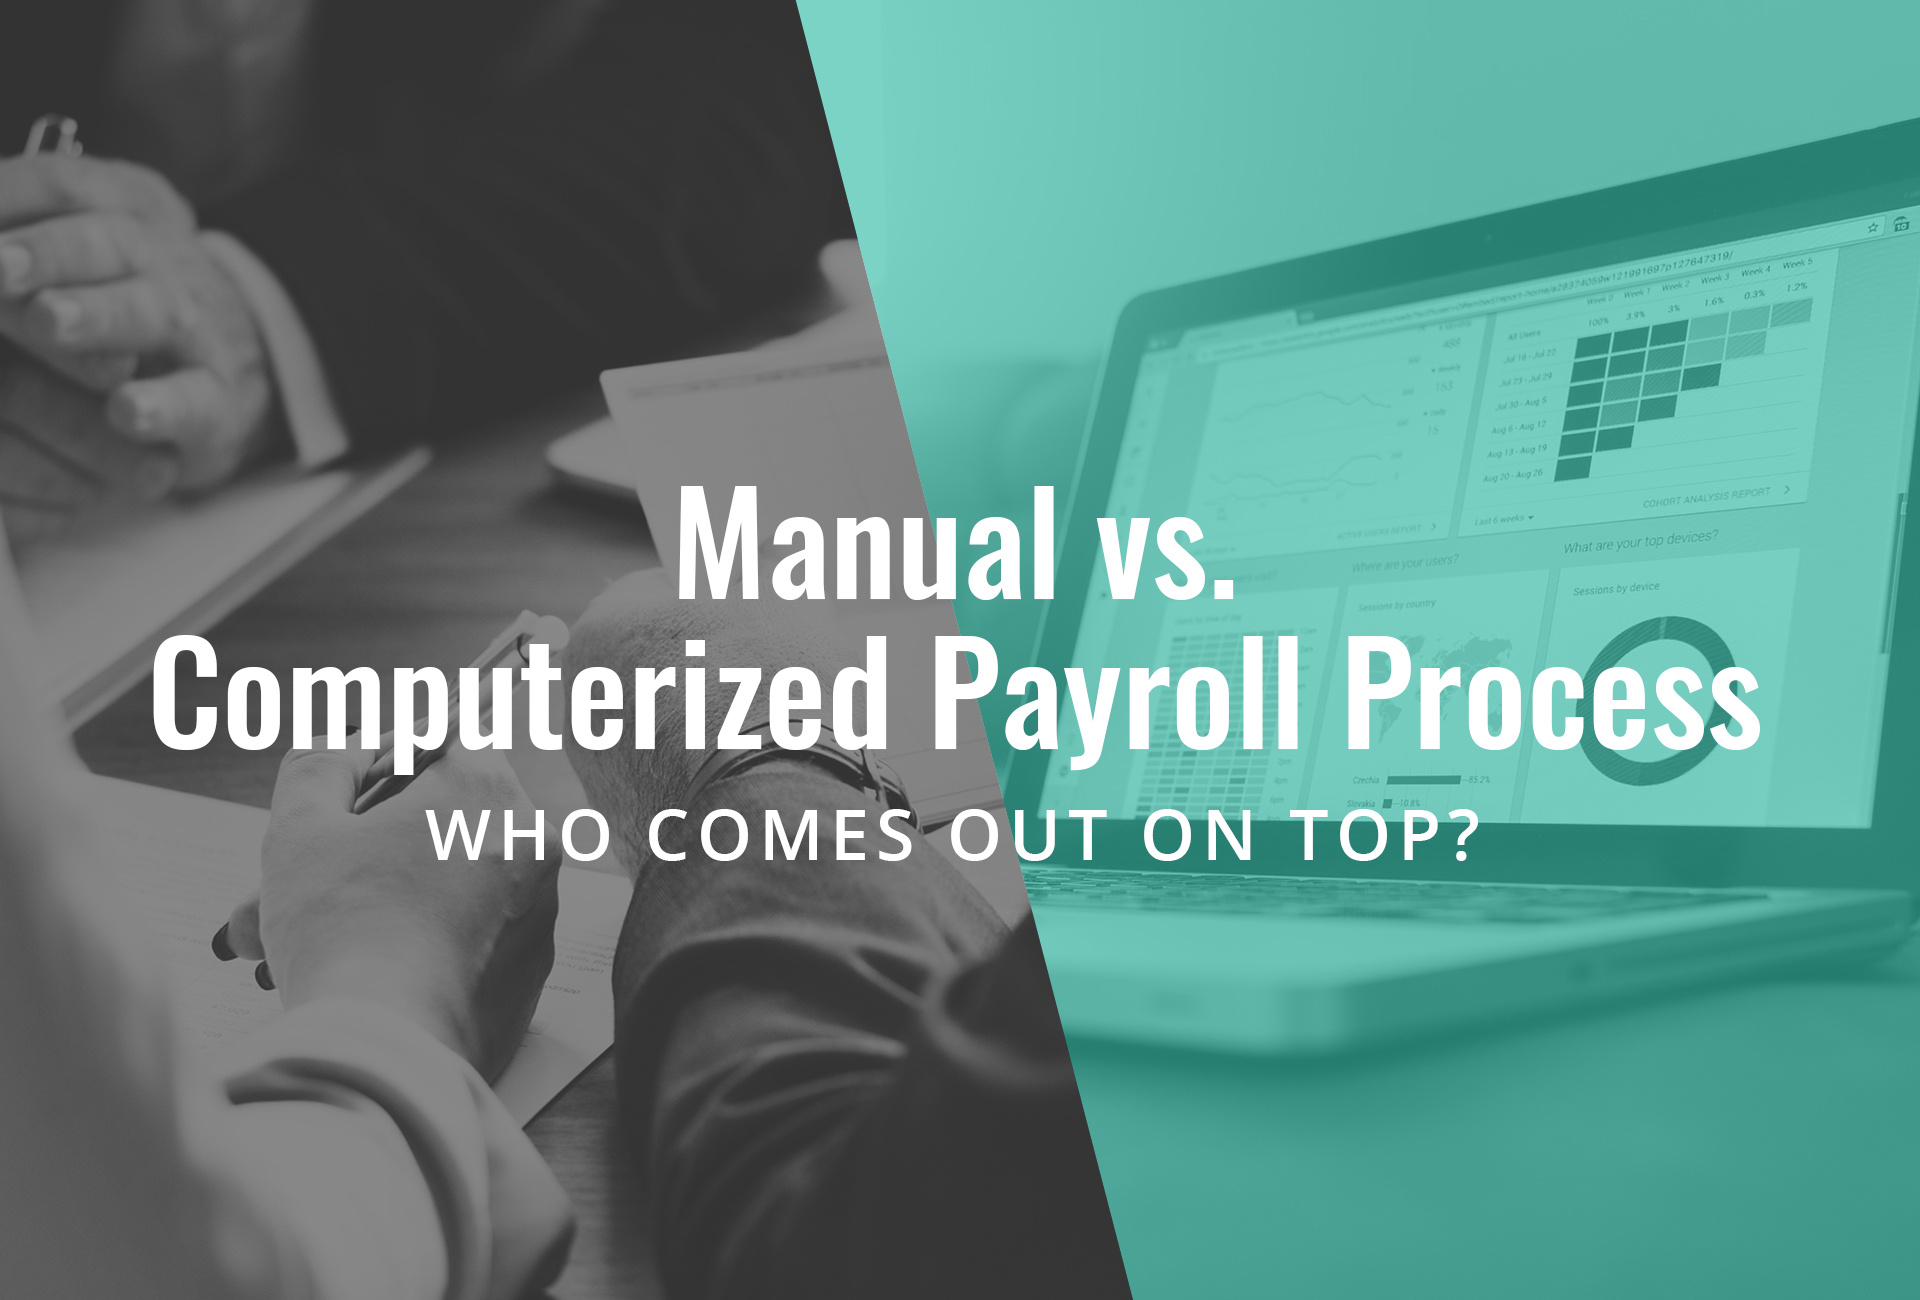 Manual versus Automated Payroll Process, Who Wins?